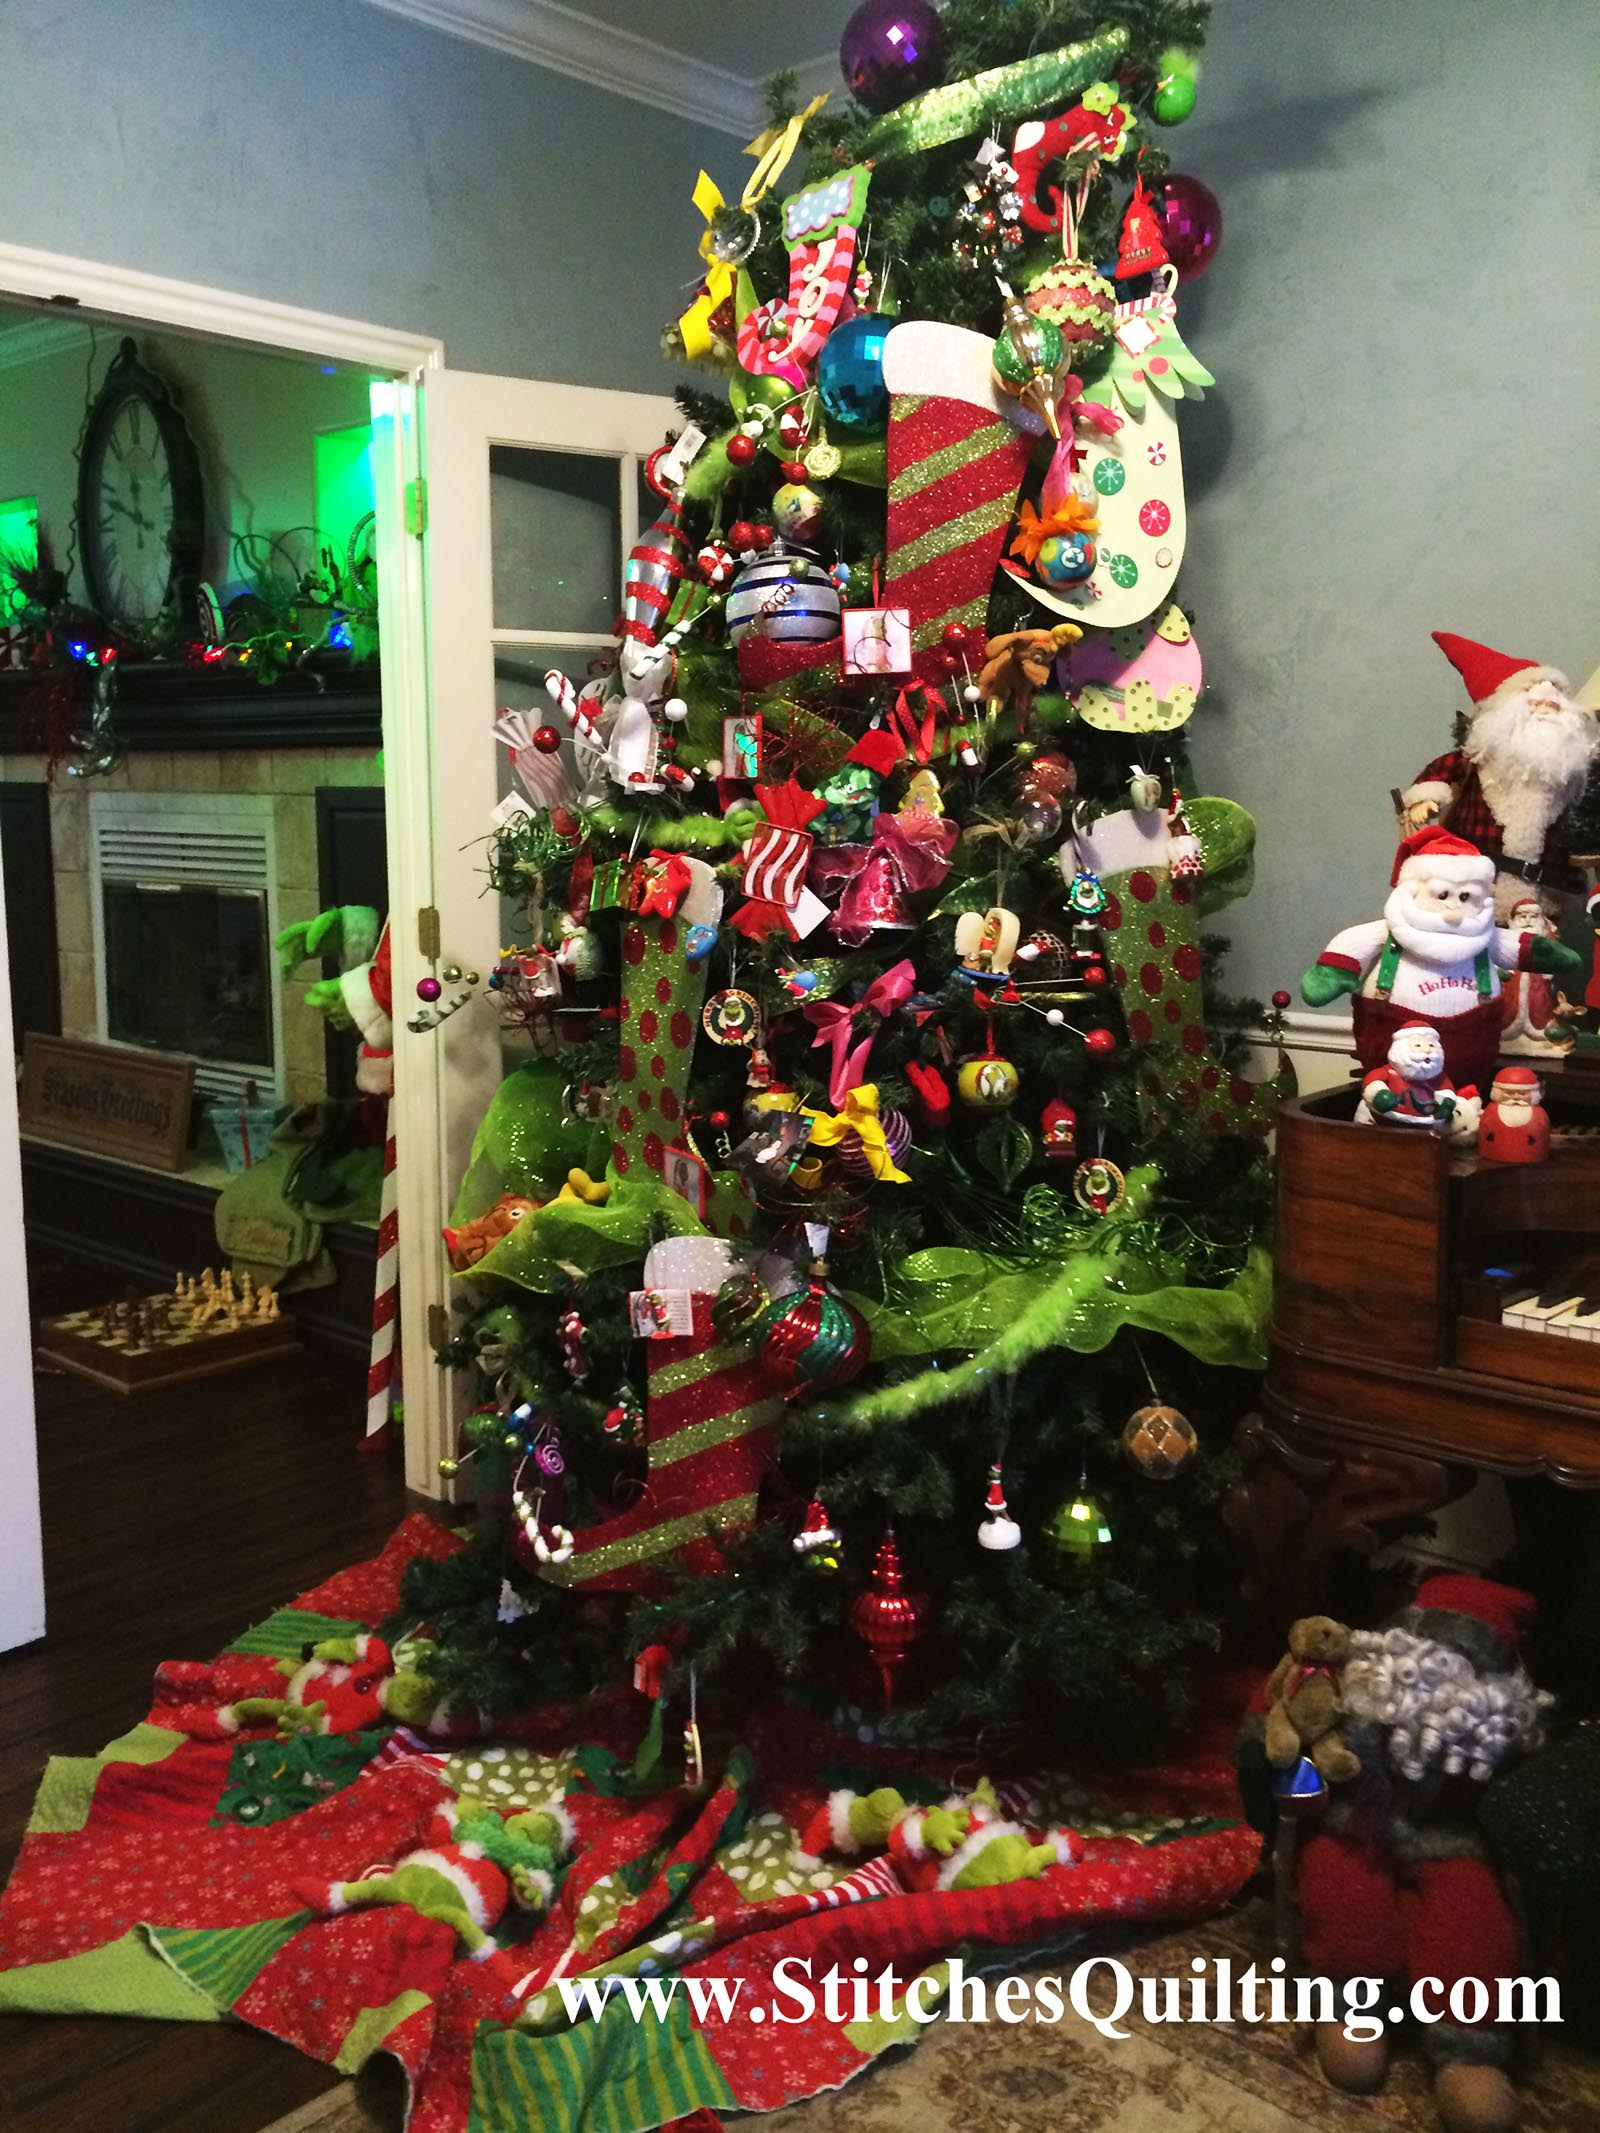 Christmas Grinch Decorations.The Grinch Christmas Tree